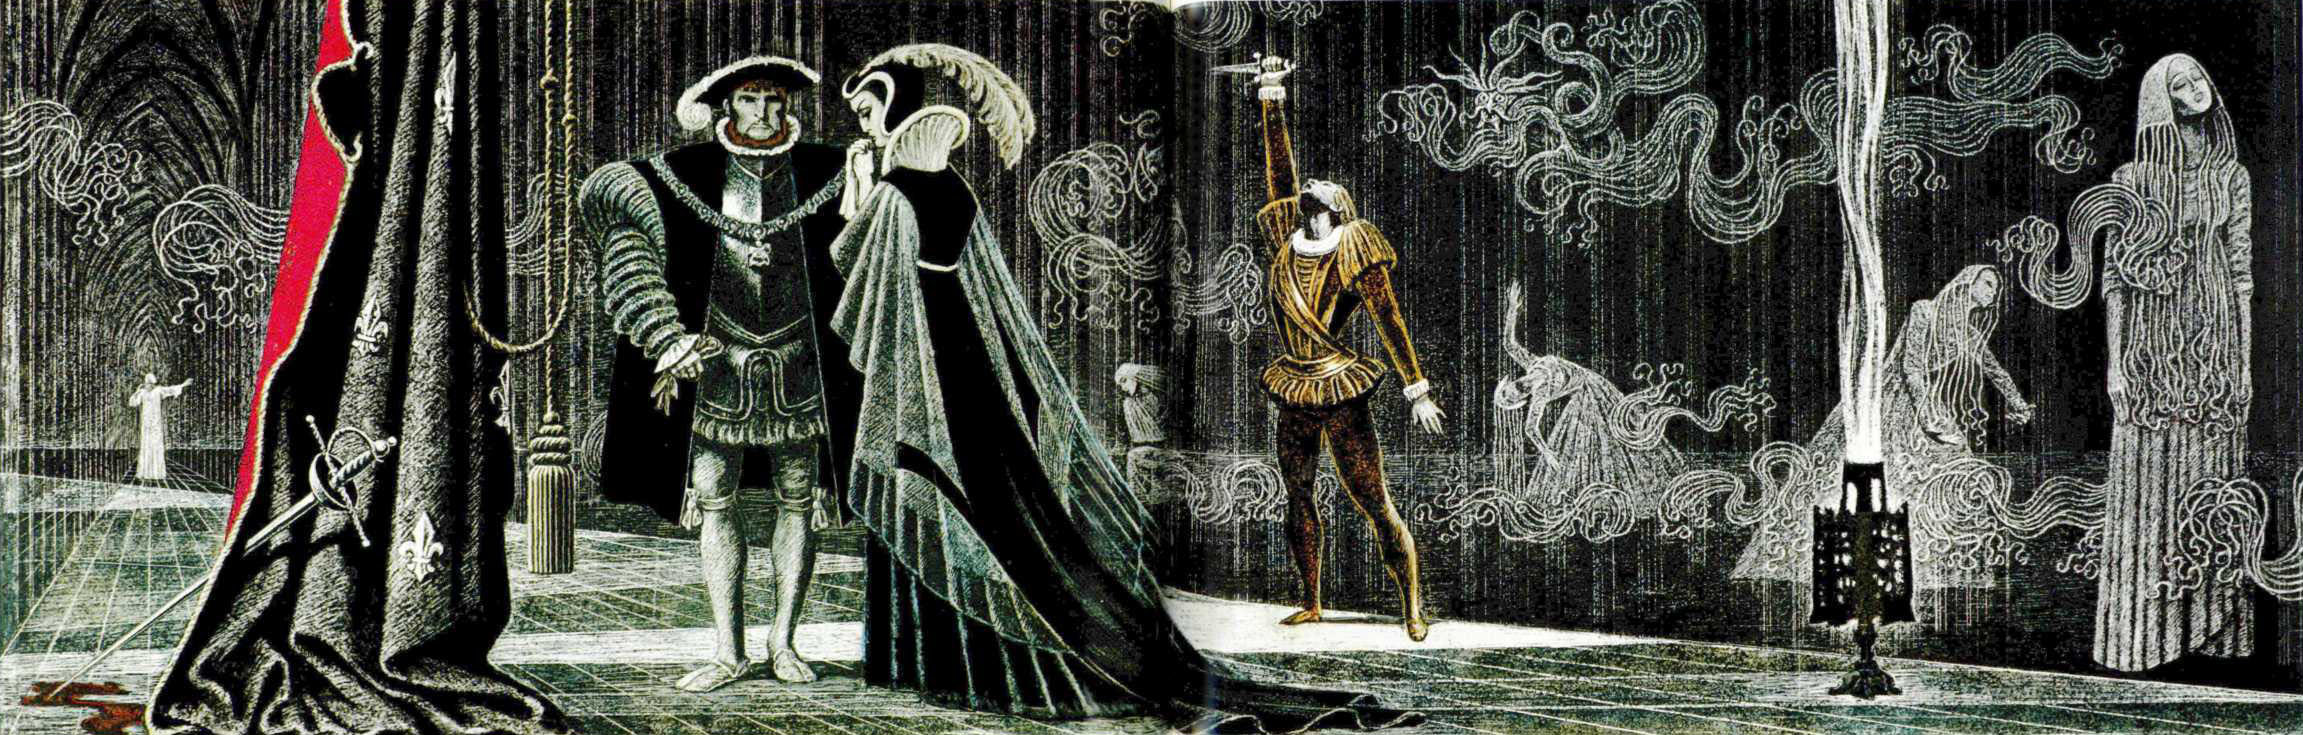 an analysis of the madness of hamlet and ophelia in the play hamlet by william shakespeare William shakespeare's ophelia in her madness, ophelia is an autonomous being showcasing her subjectivity by thinking the play hamlet 1.